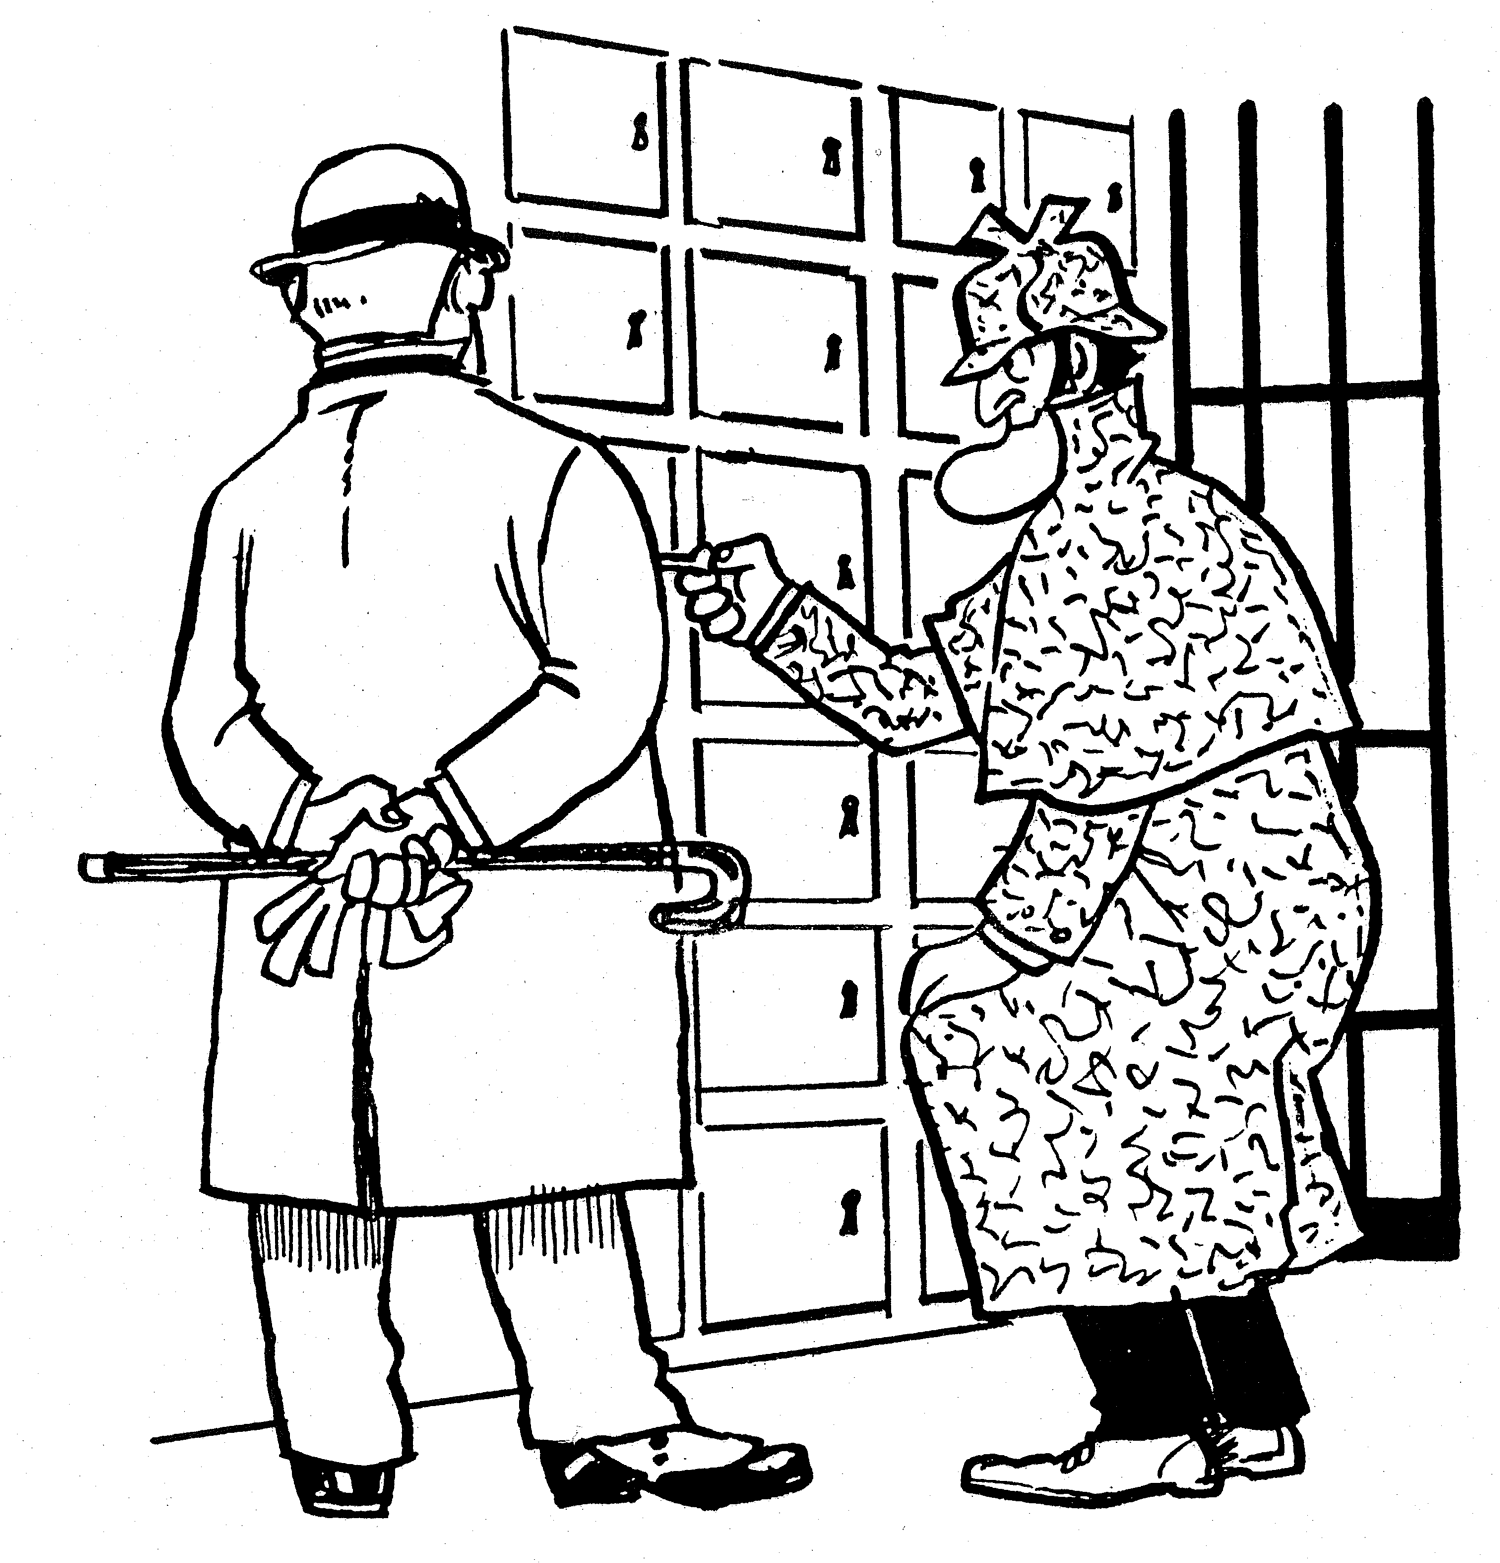 """While working on a case Holmes receives vital information from a mysterious source in the form of a note.  The note reads: Go to the Dunwick Bank. Inside each of the safety deposit boxes listed below you will find a clue to the crime you are presently investigating.  BOX NUMBERS : 20, 80, 76, 19, 23, 92, 88 and ?  I have omitted to tell you the number of the last box, but I'm sure a great detective such as yourself will know where to look.  Holmes read the note then passed it to Doctor Watson.  """"Most inconvenient,"""" muttered Watson."""" Now we'll have to open every single safety deposit box to find the last clue.""""  """"Not so, Watson."""" replied Holmes."""" I know exactly which box to open. Come along Watson, let's hurry to the Dunwick Bank.""""  What was the number of the last safety deposit box?"""